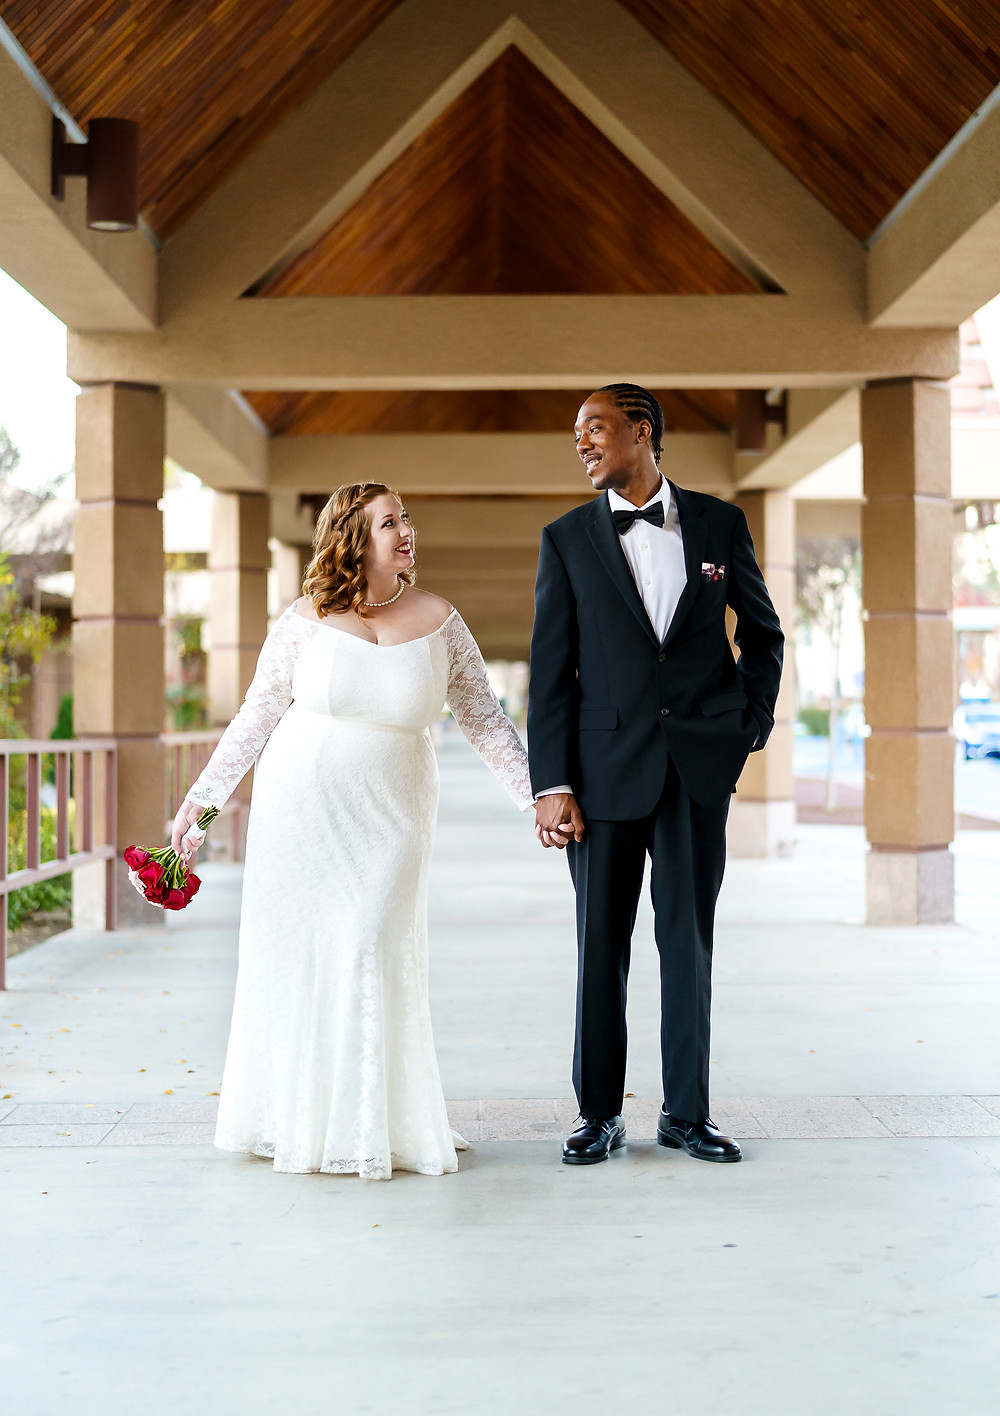 Intimate Elopement Couple at Riverside County Clerks Office in Temecula, California